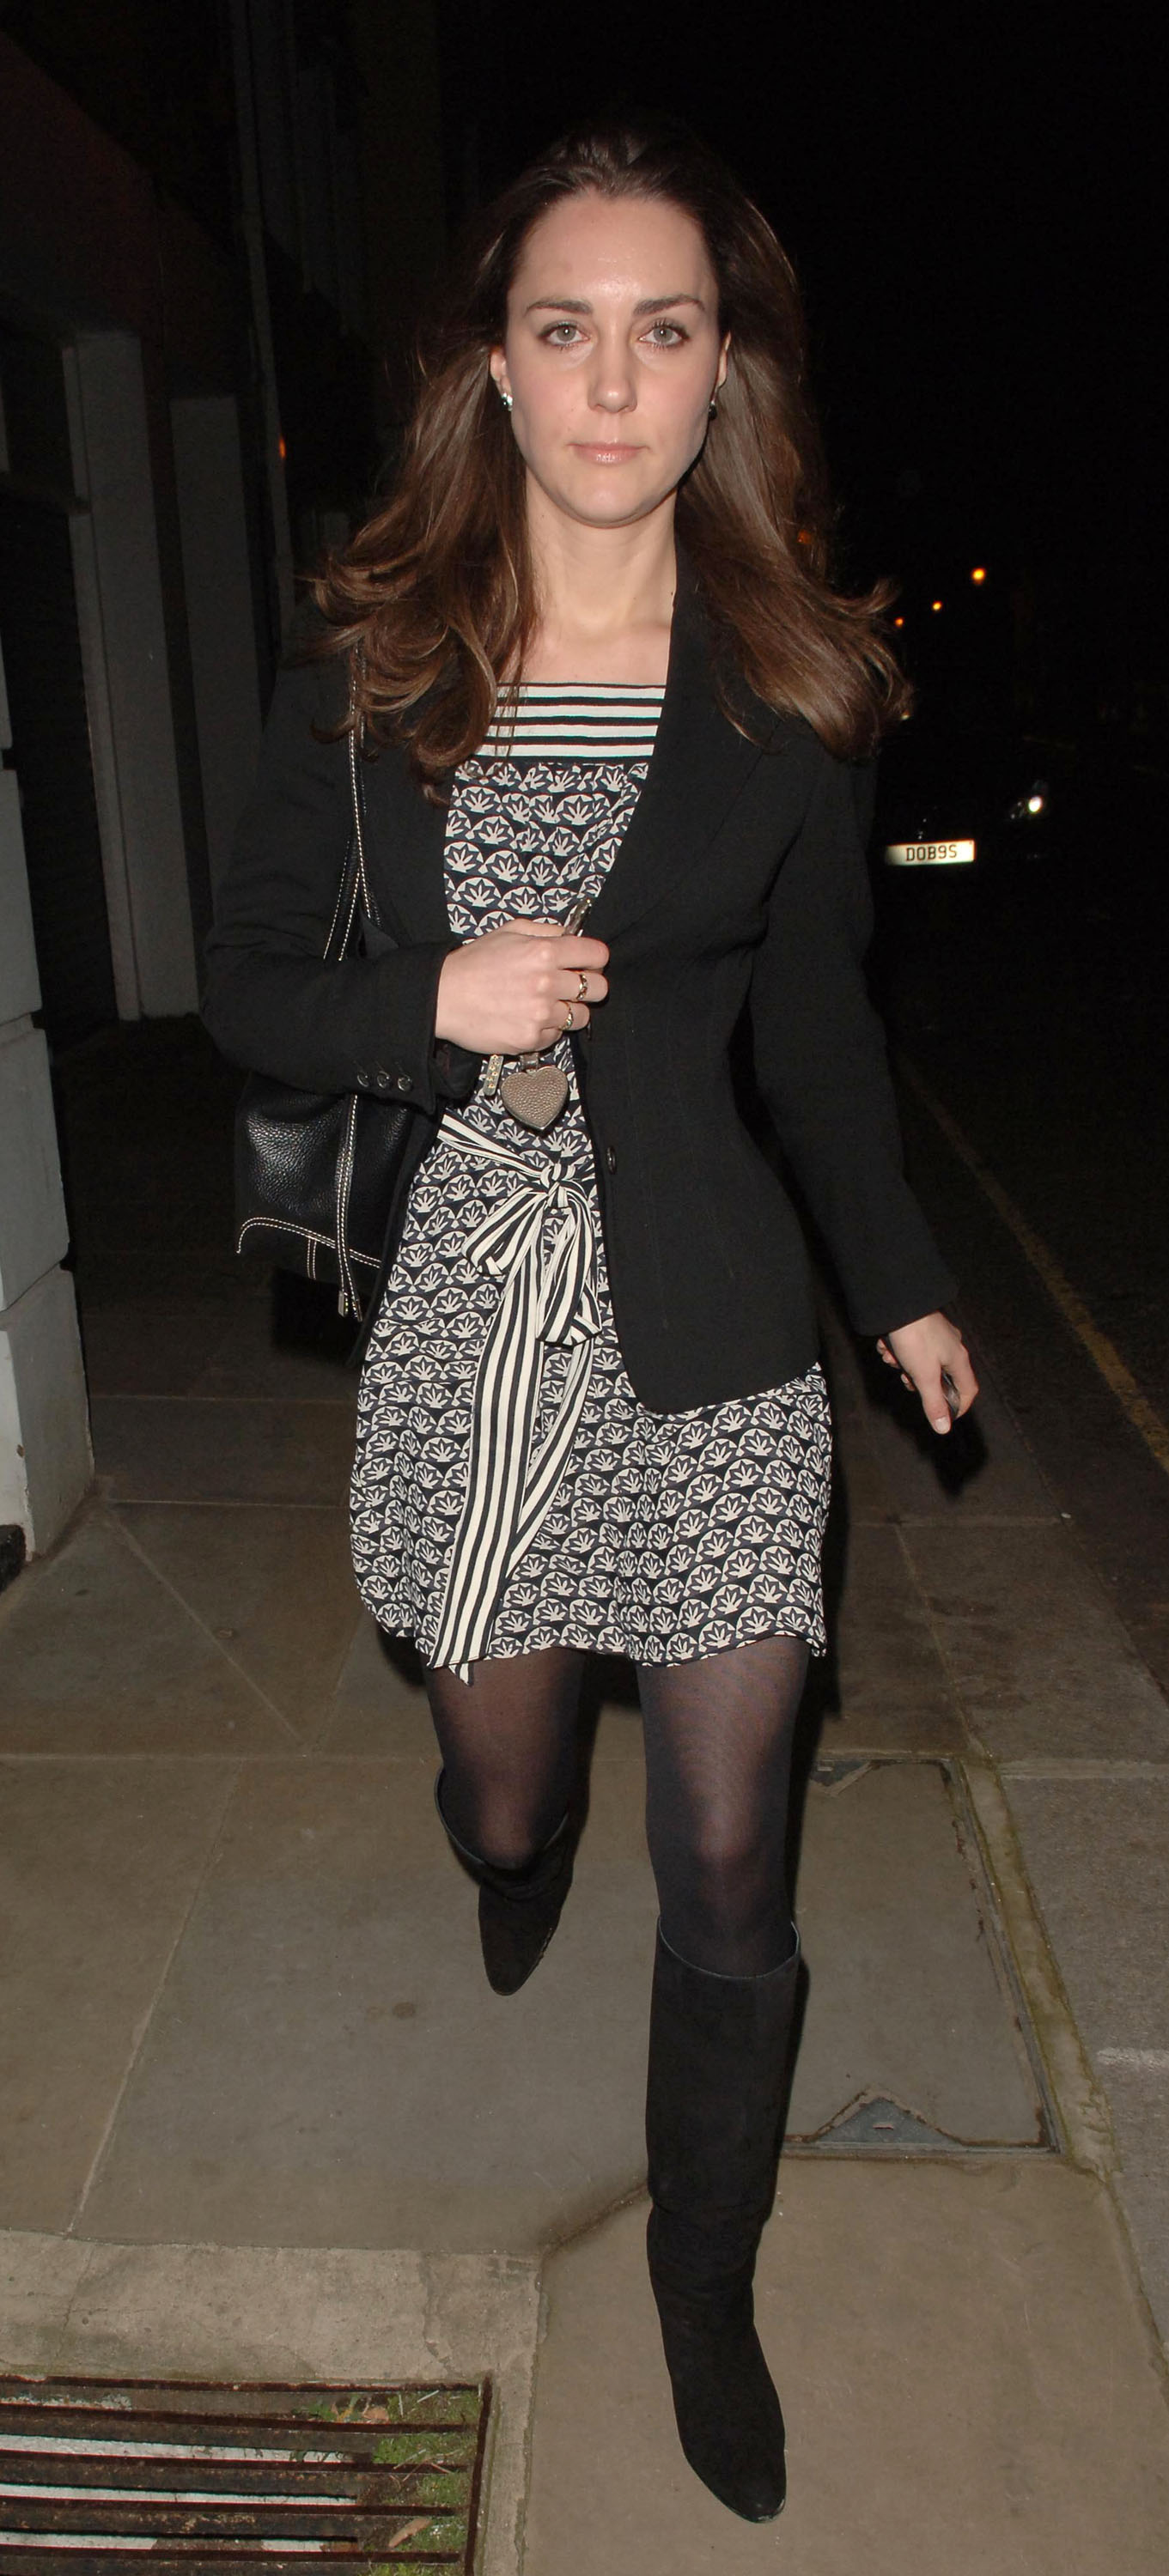 <strong>Working-Girl Wardrobe</strong>                                   Photographers snapped Middleton in a patterned dress and black blazer as she returned home from work in London on Jan. 9, 2007. She had worked as an accessories buyer for Jigsaw, a clothing chain, but will not be able to do any work apart from charity after getting married.